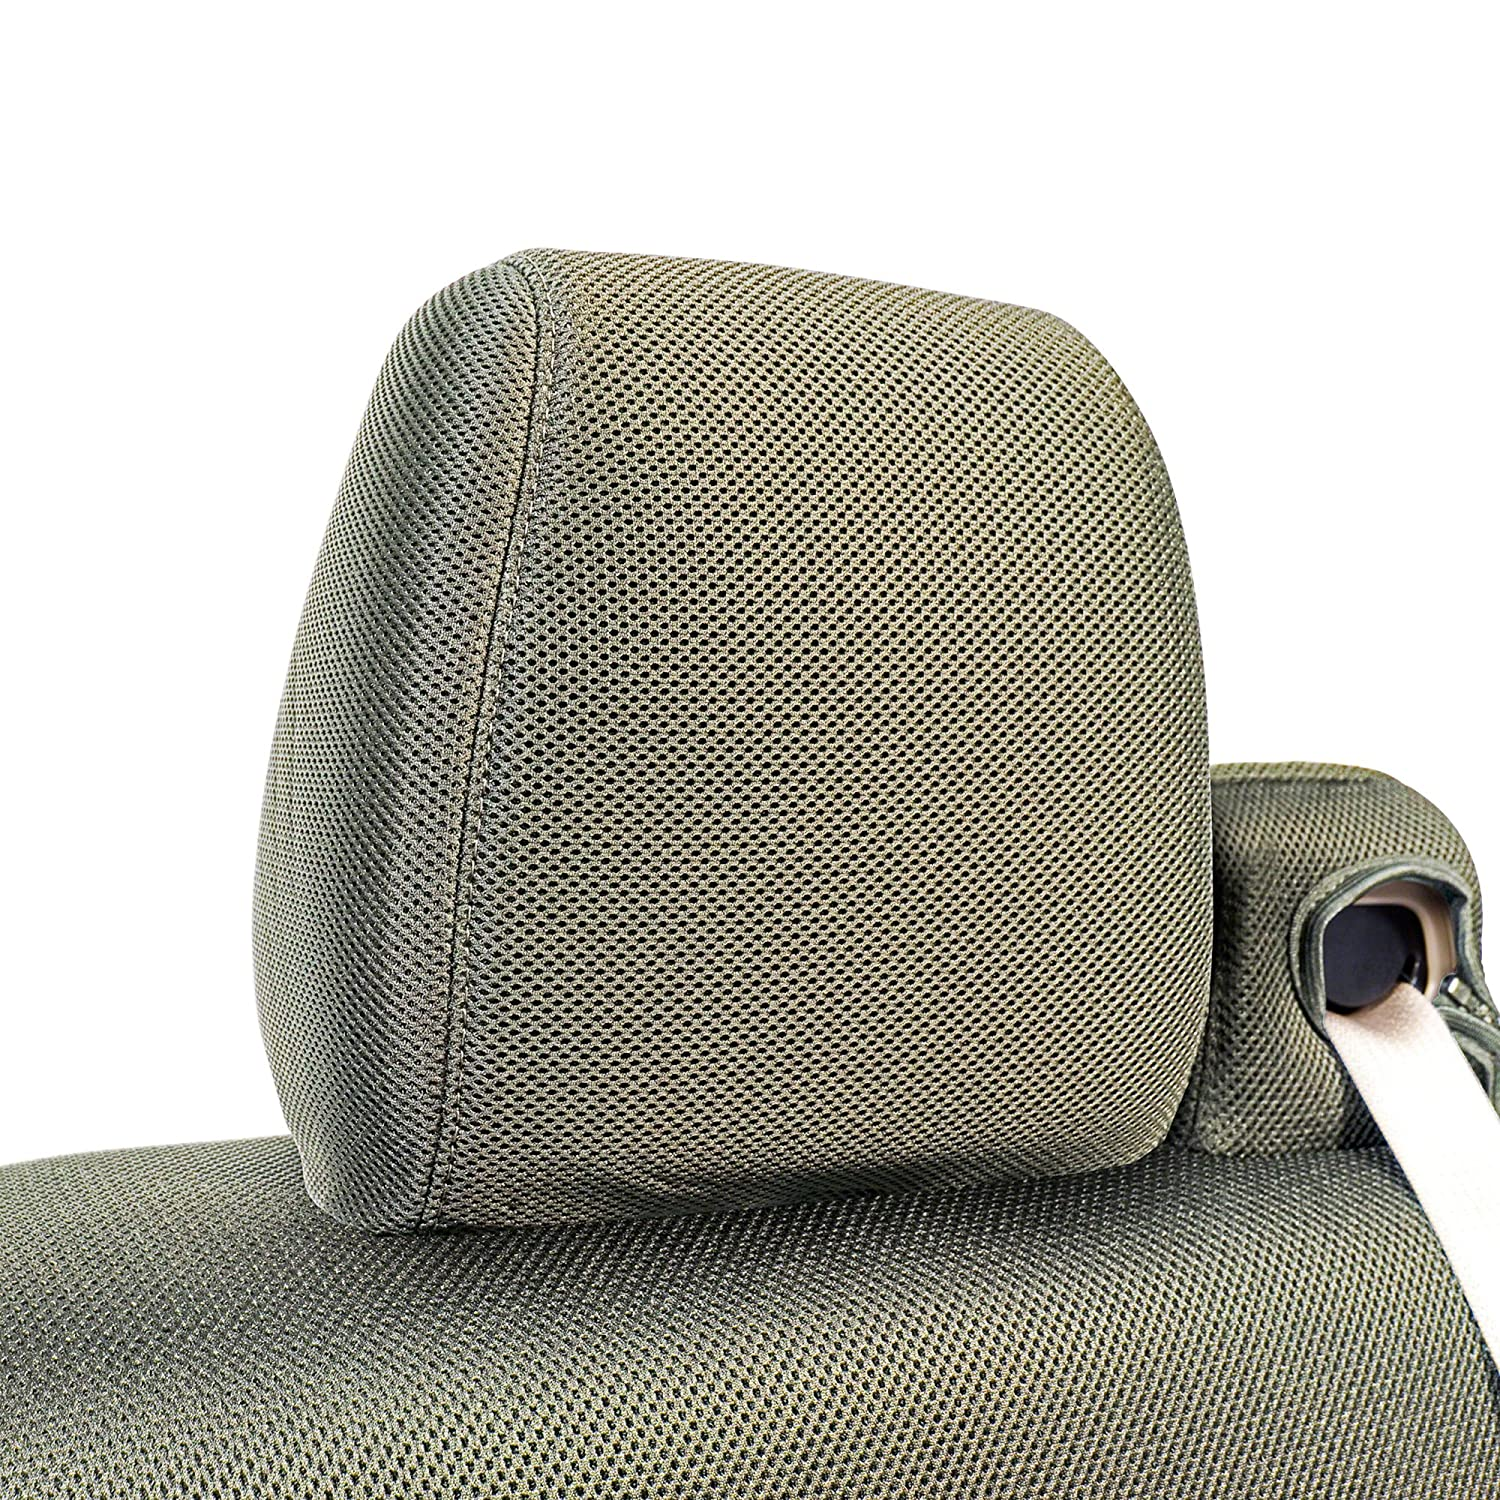 Mesh Solid 1 Row MSCSMM06TT7531M Coverking Custom Fit Molded Seat Cover for Select Toyota Truck Tacoma Models Taupe